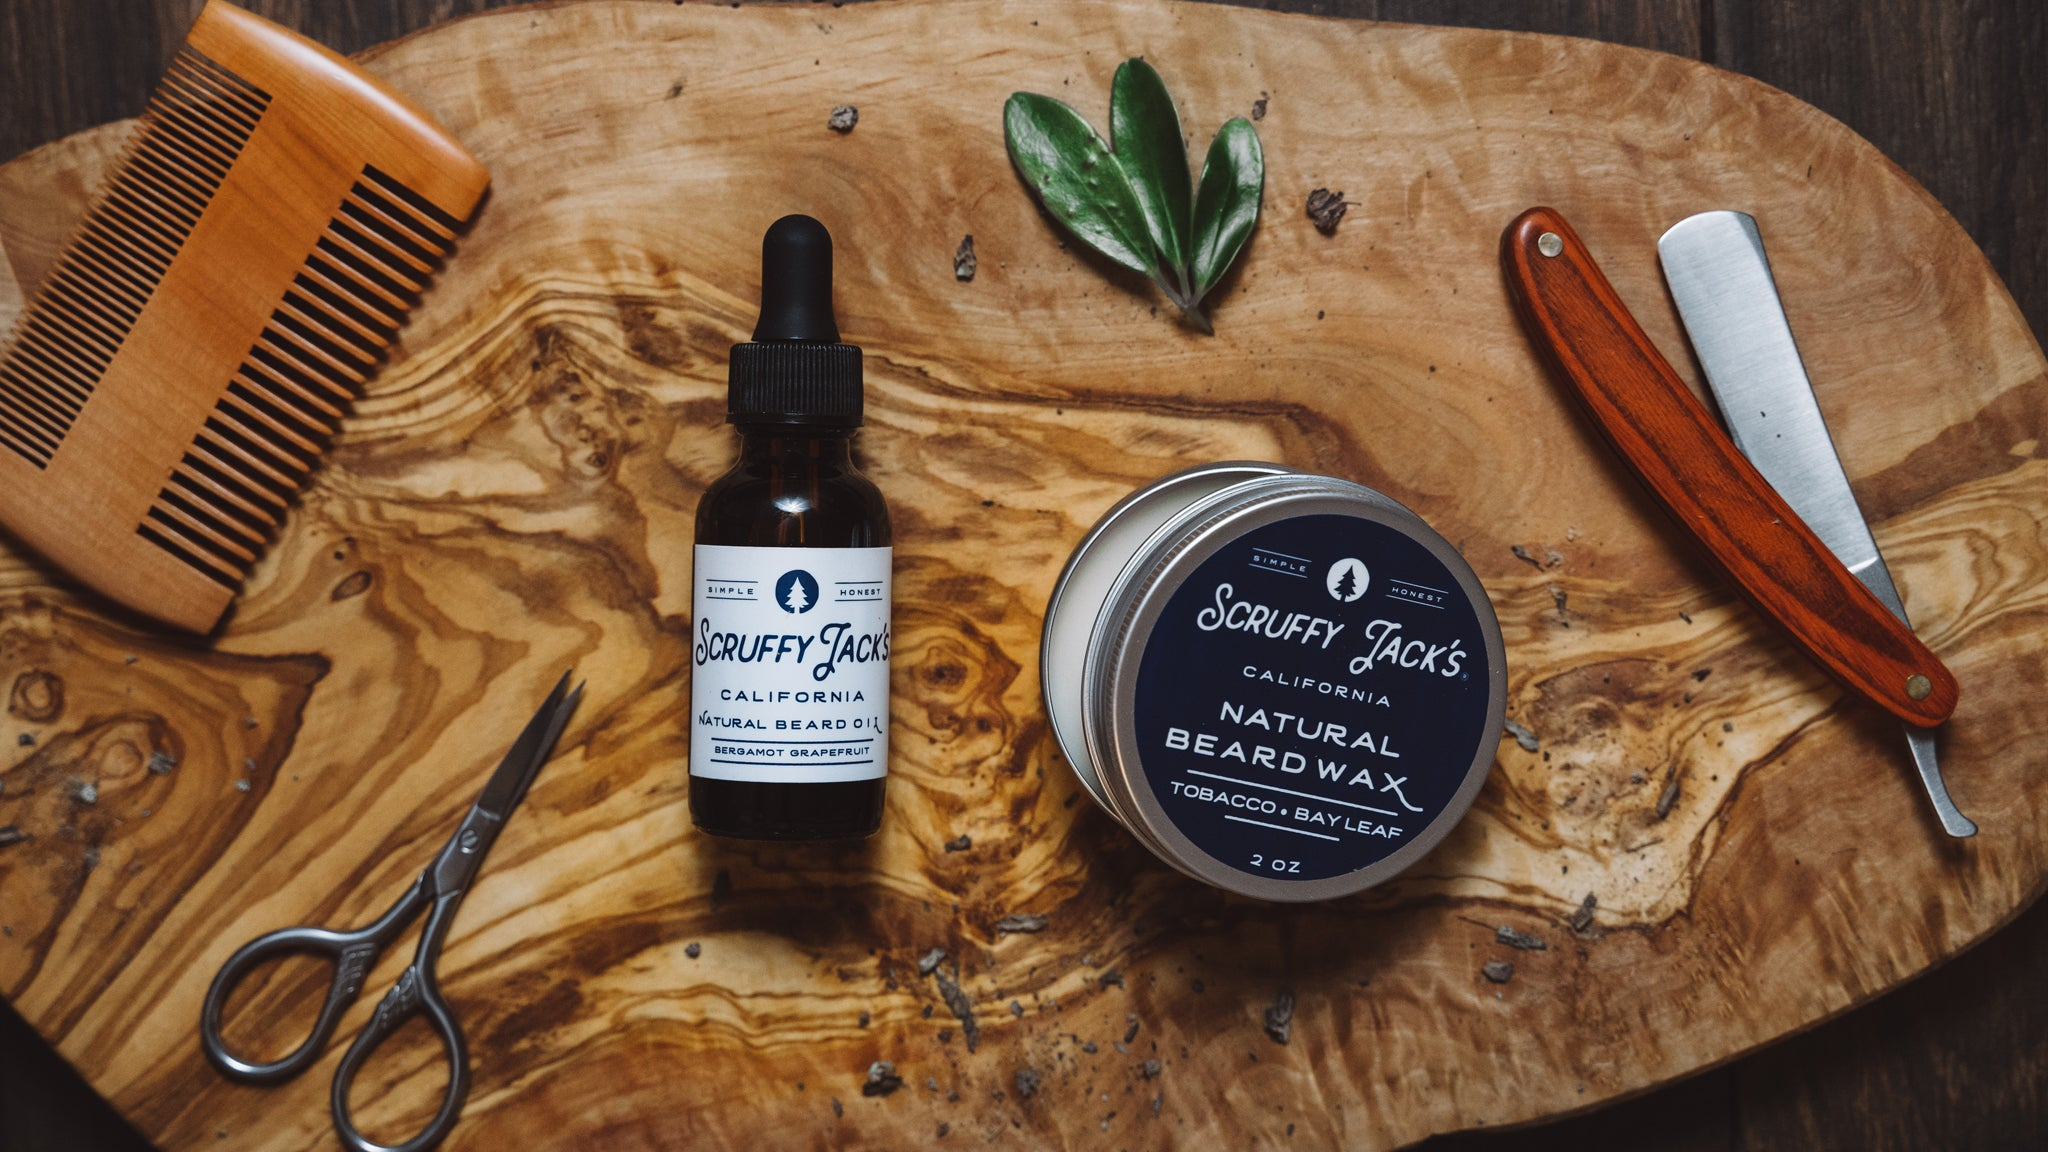 Scruffy-Jacks-Beard-Balm-and-Beard-Oil